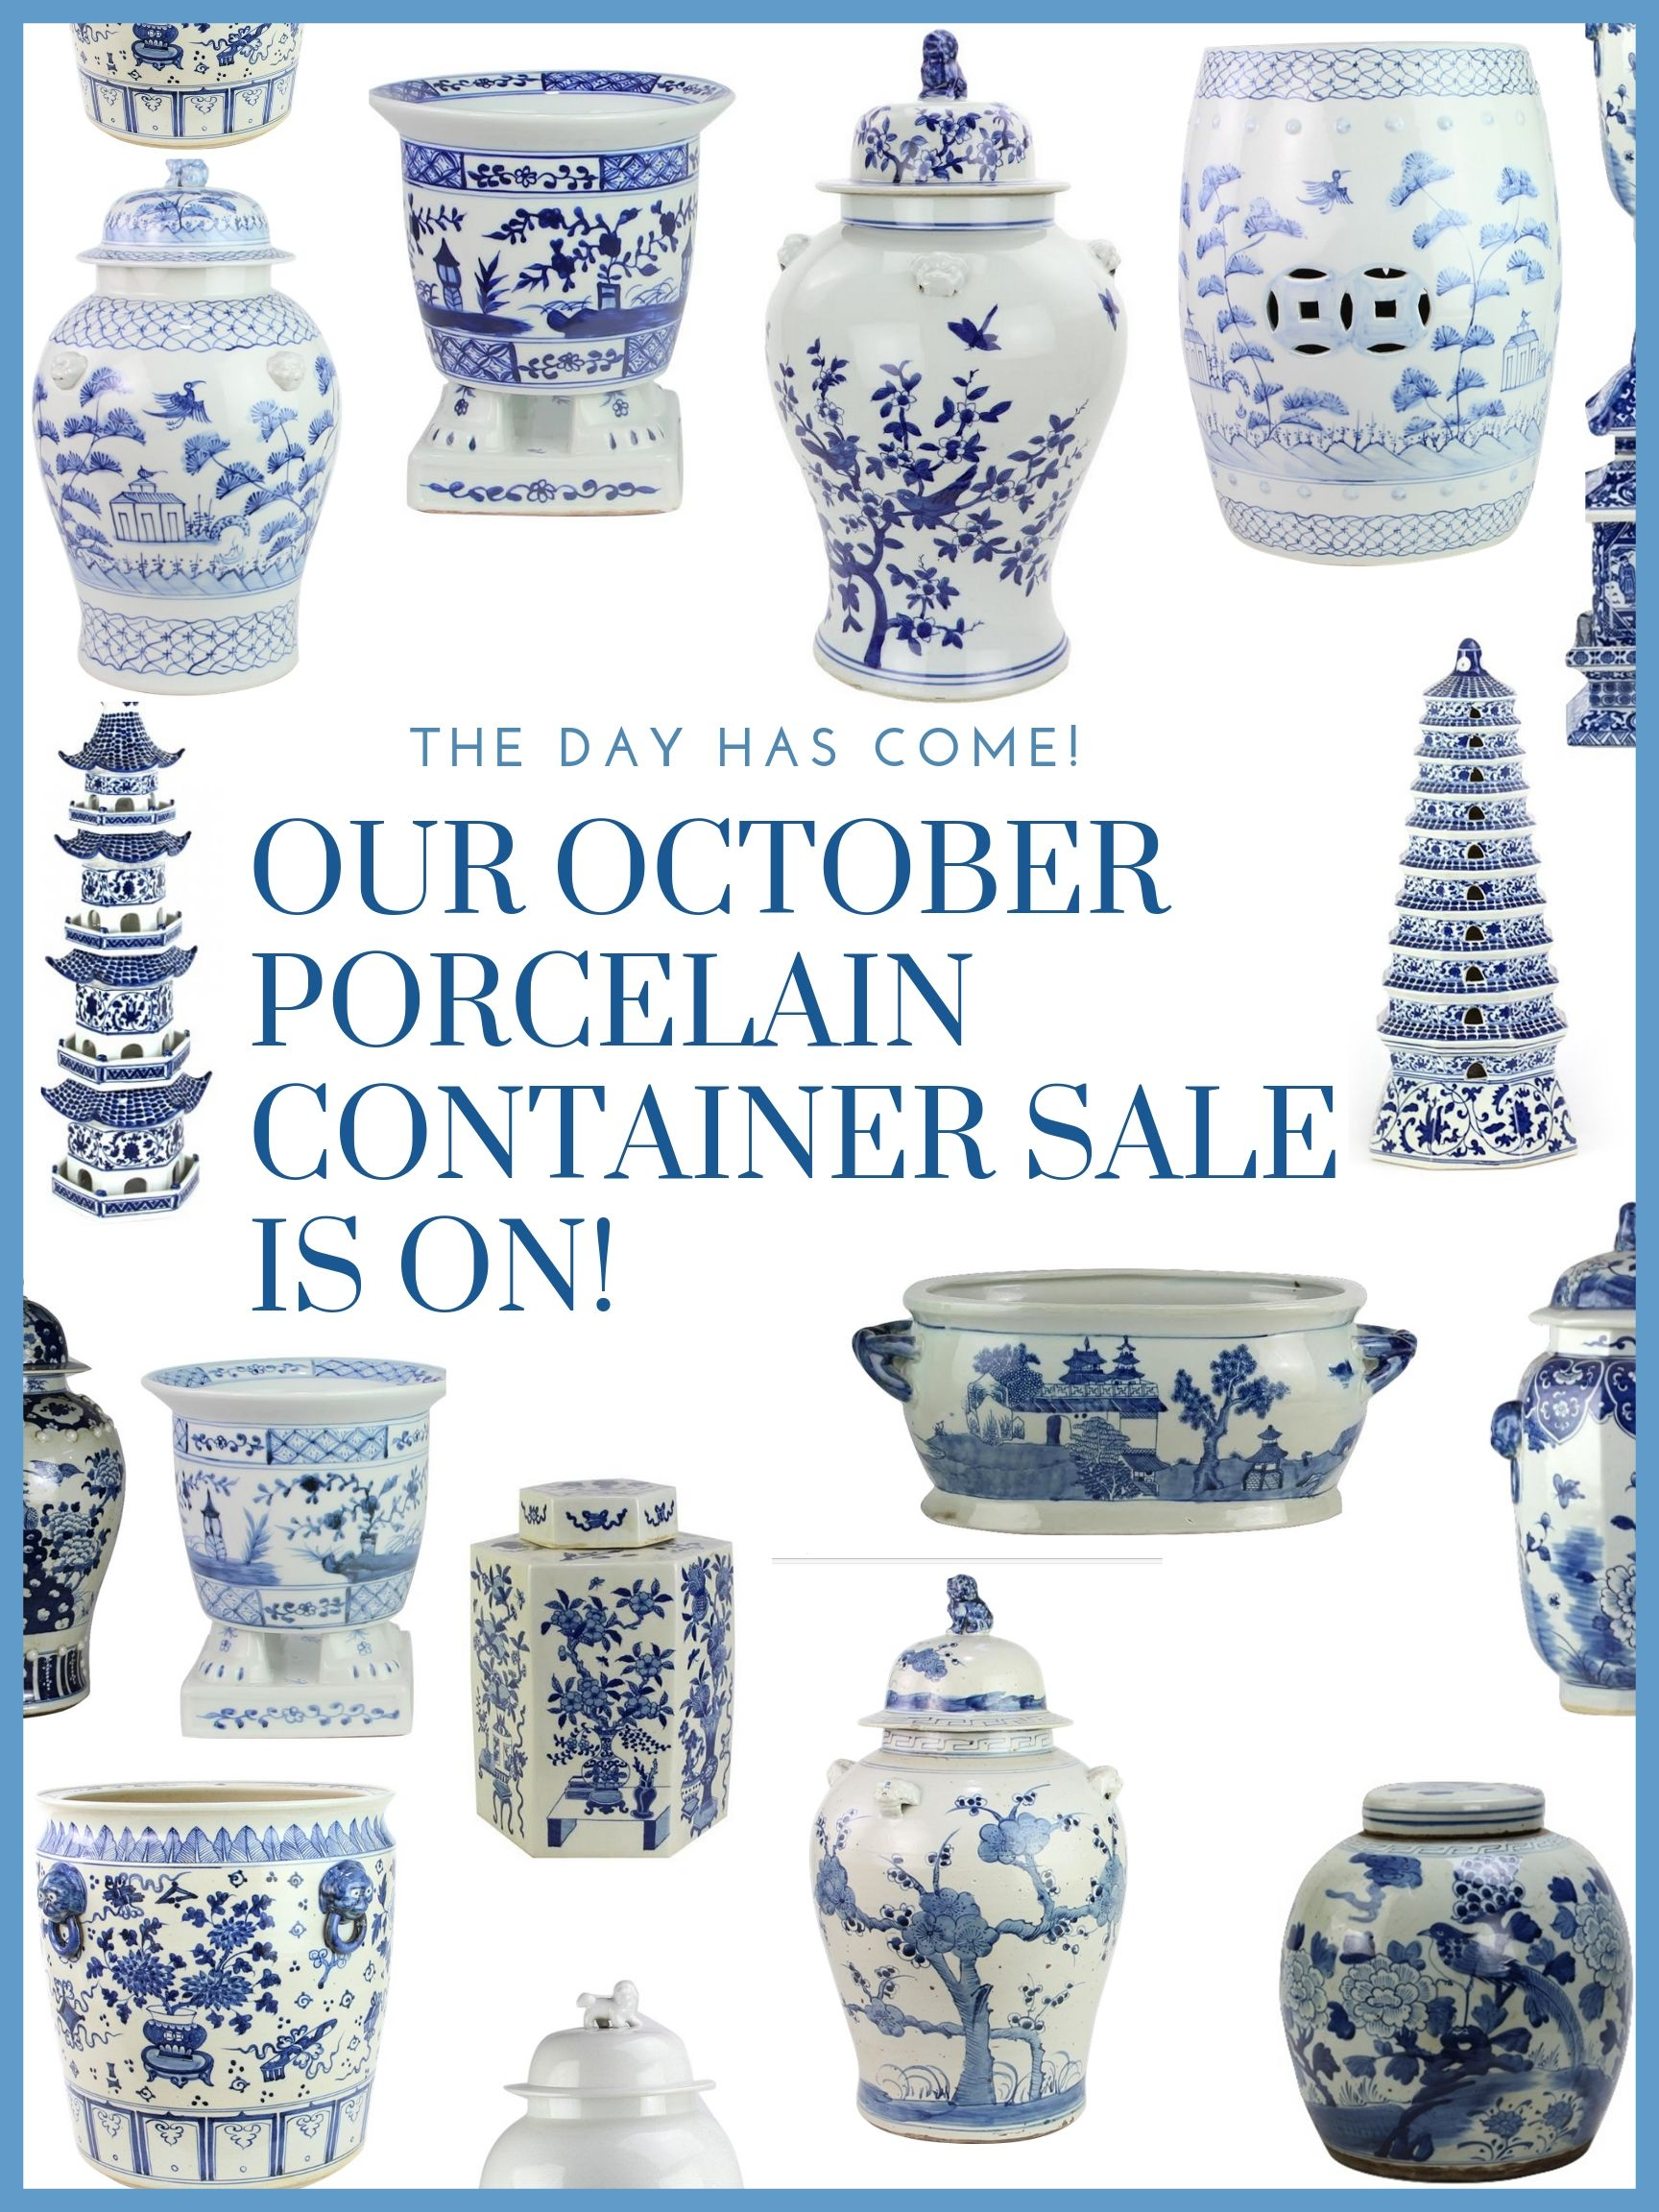 The October porcelain container is on plus a giveaway!